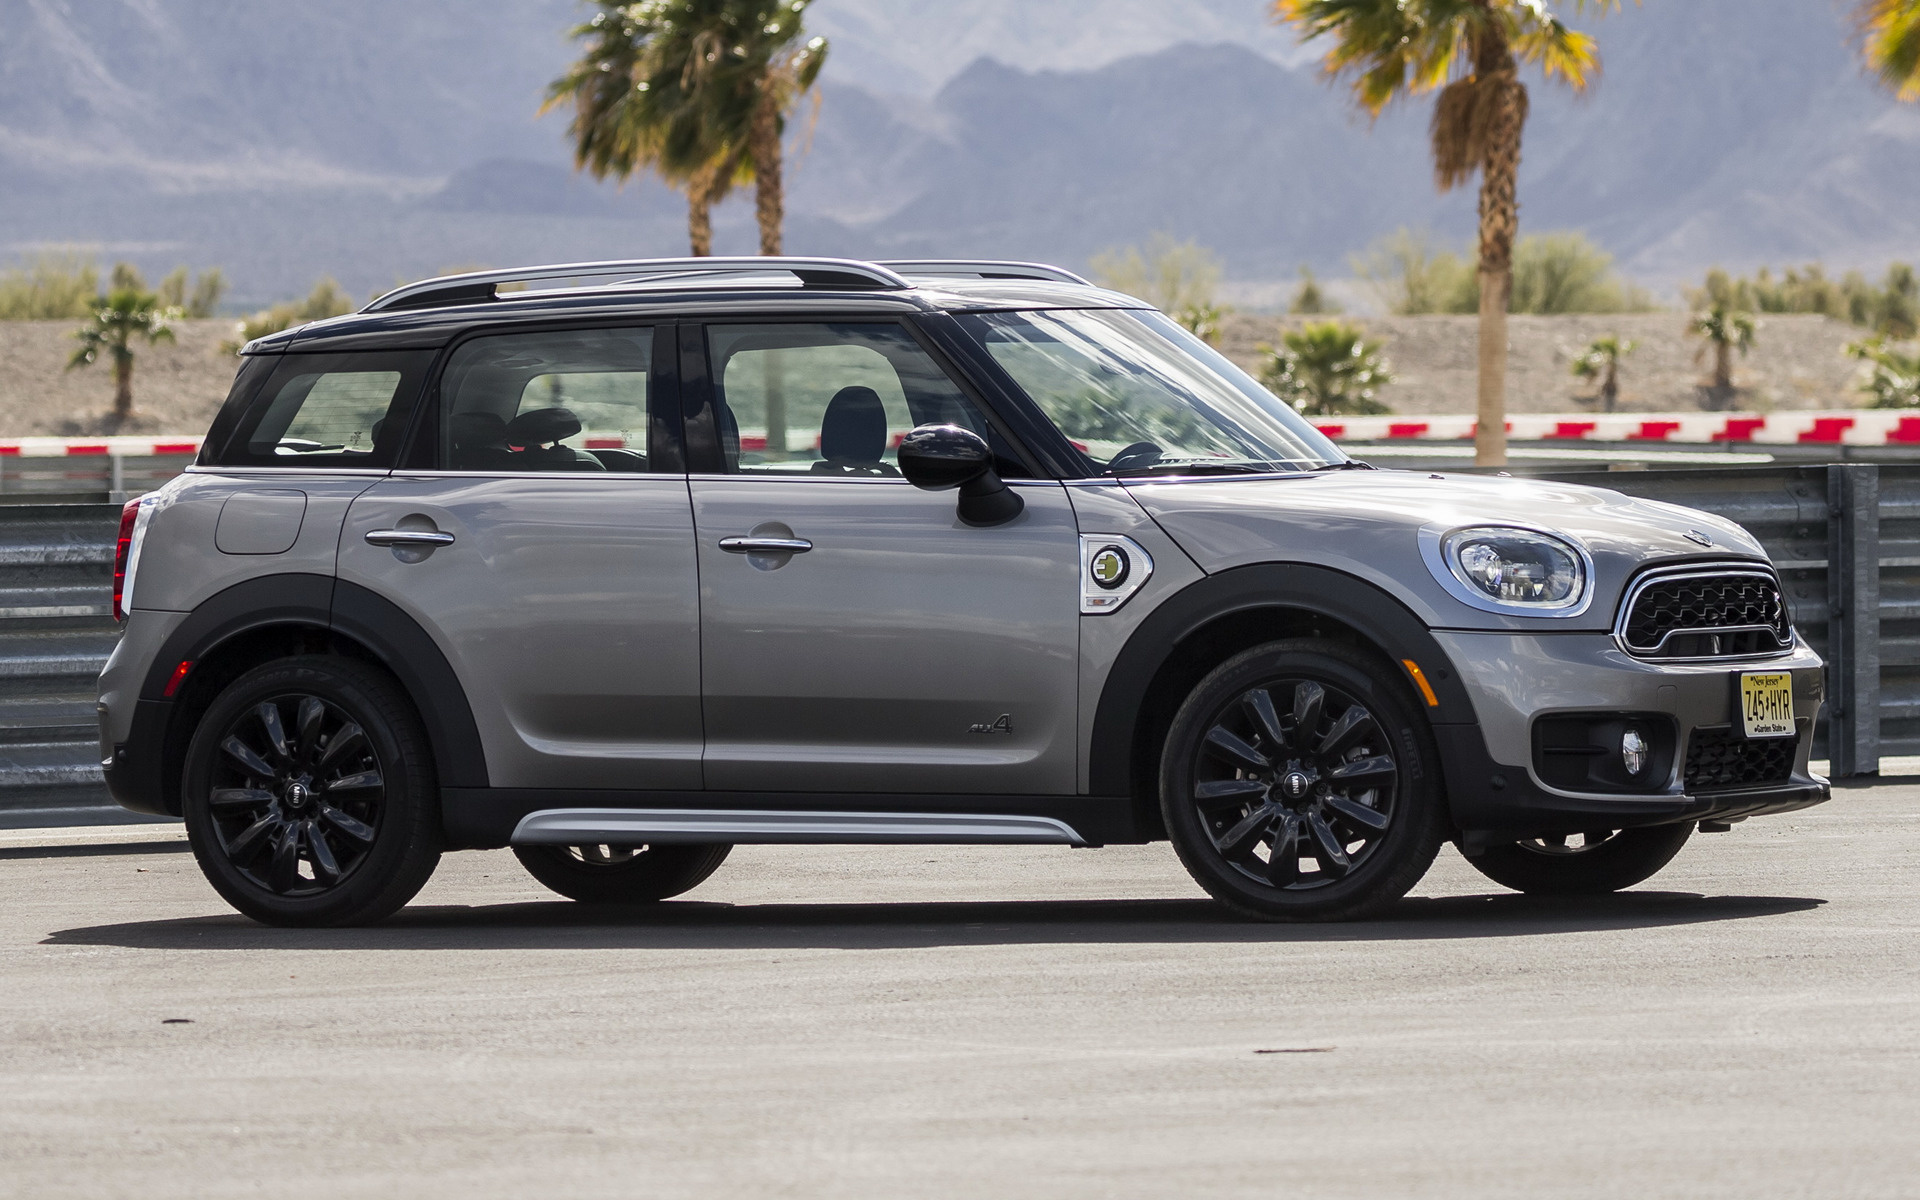 2018 Mini Cooper S E Countryman (US) - Wallpapers and HD Images | Car Pixel